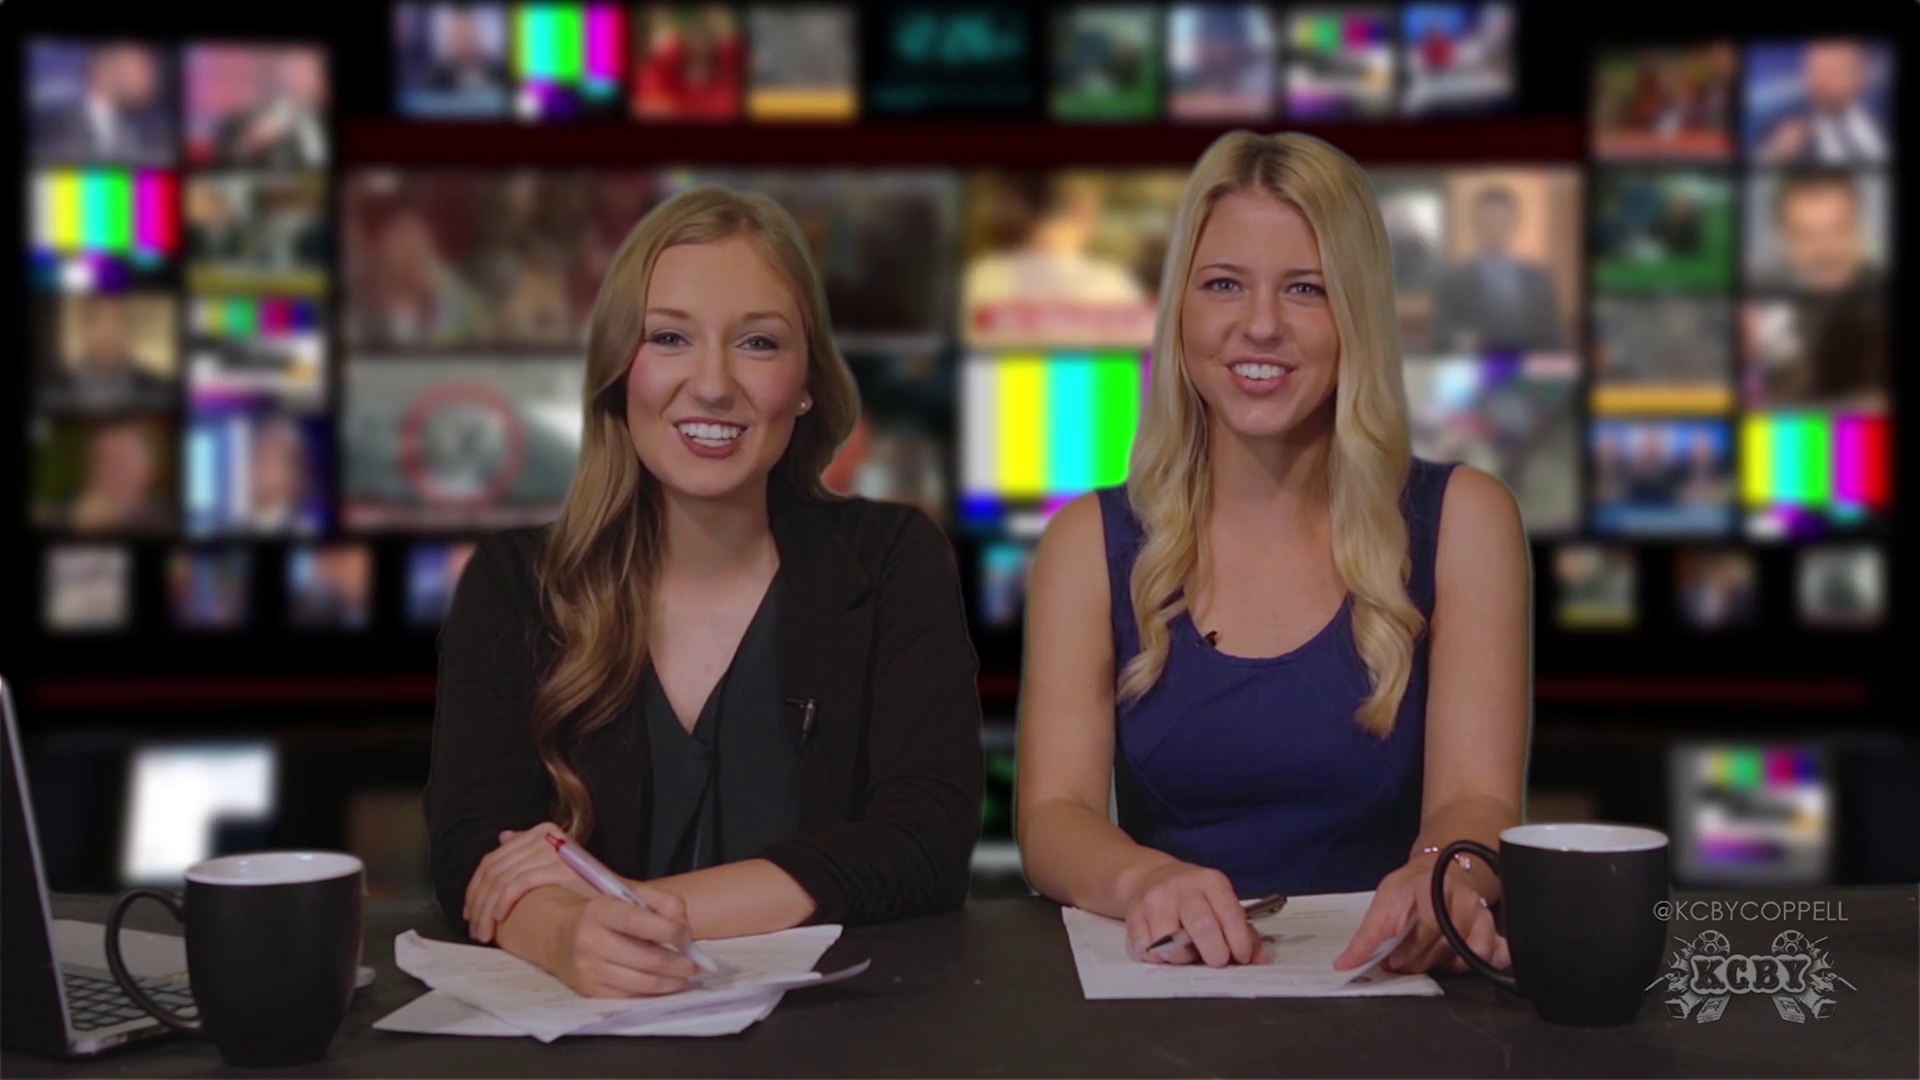 Coppell High School Named Best Student Newscast in Nation